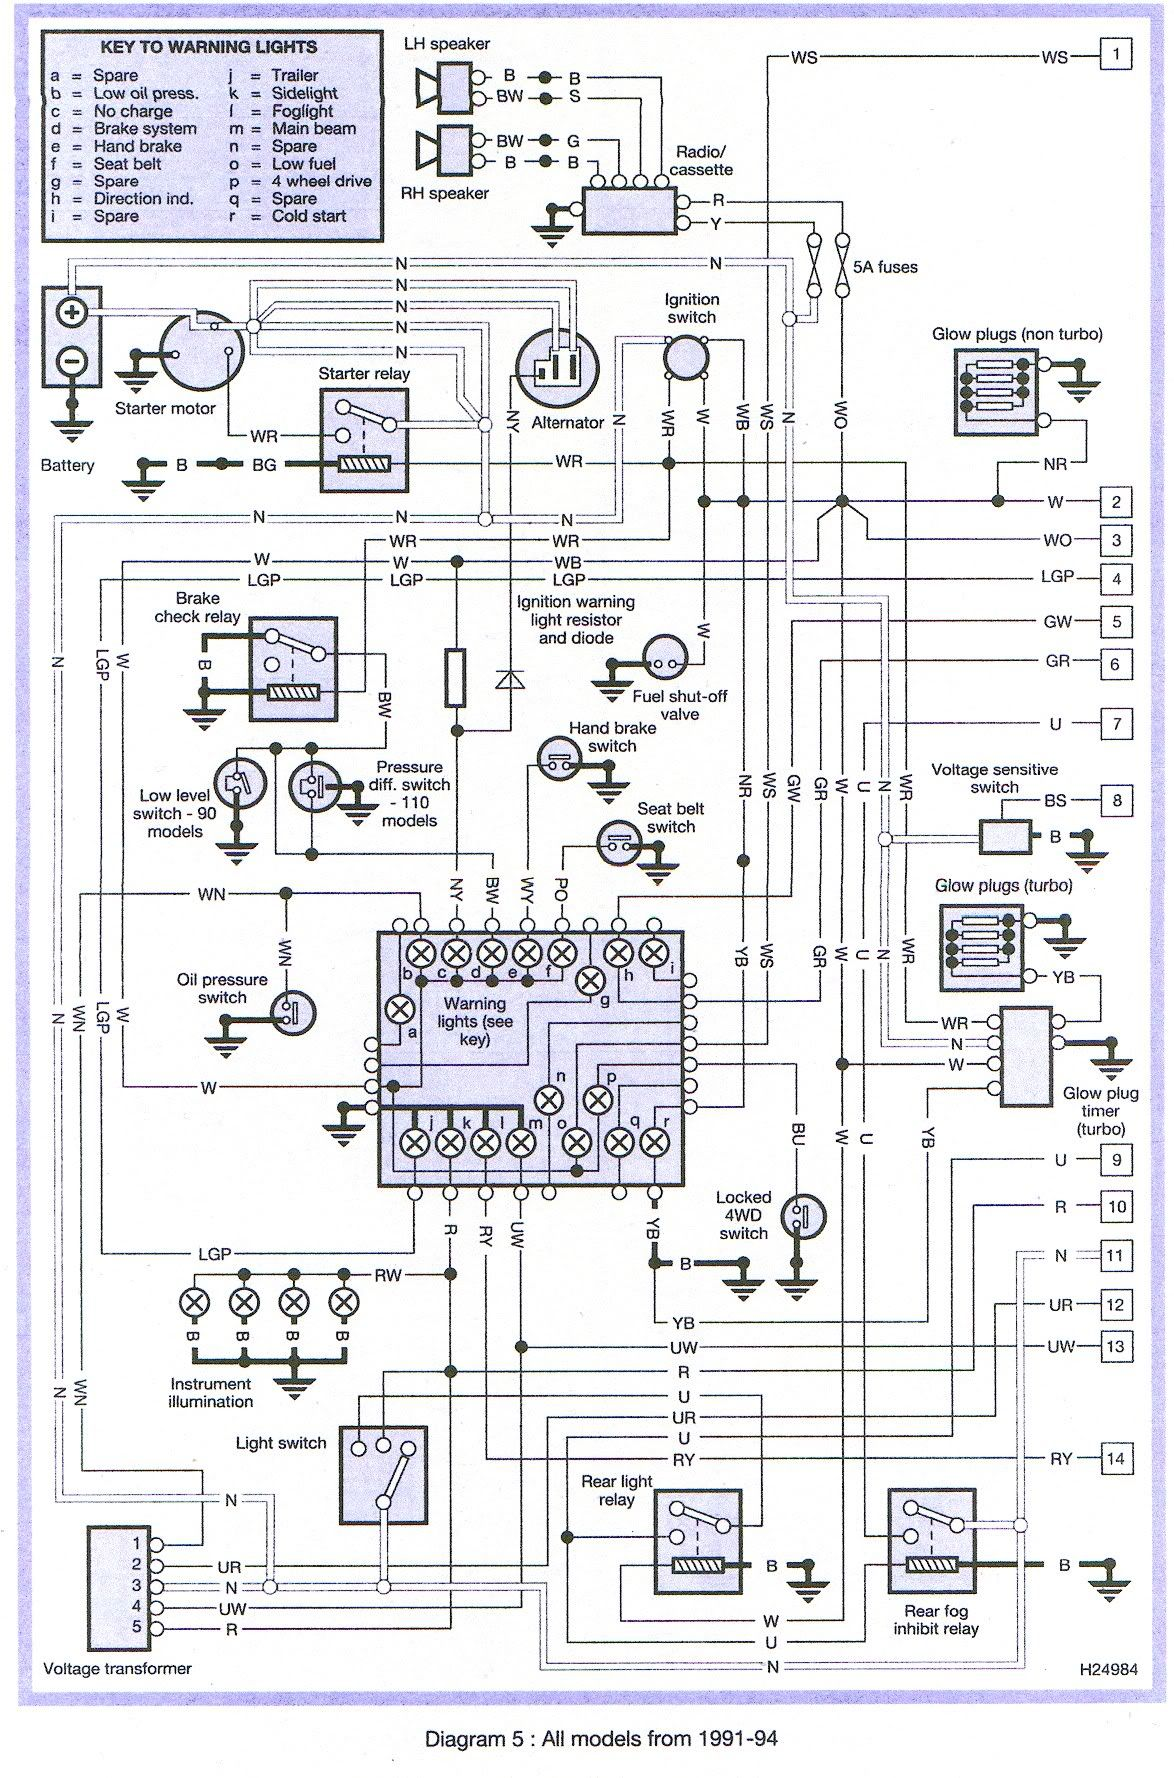 hight resolution of land rover discovery 1 radio wiring diagram wiring diagrams scematic mgb wiring diagram 97 land